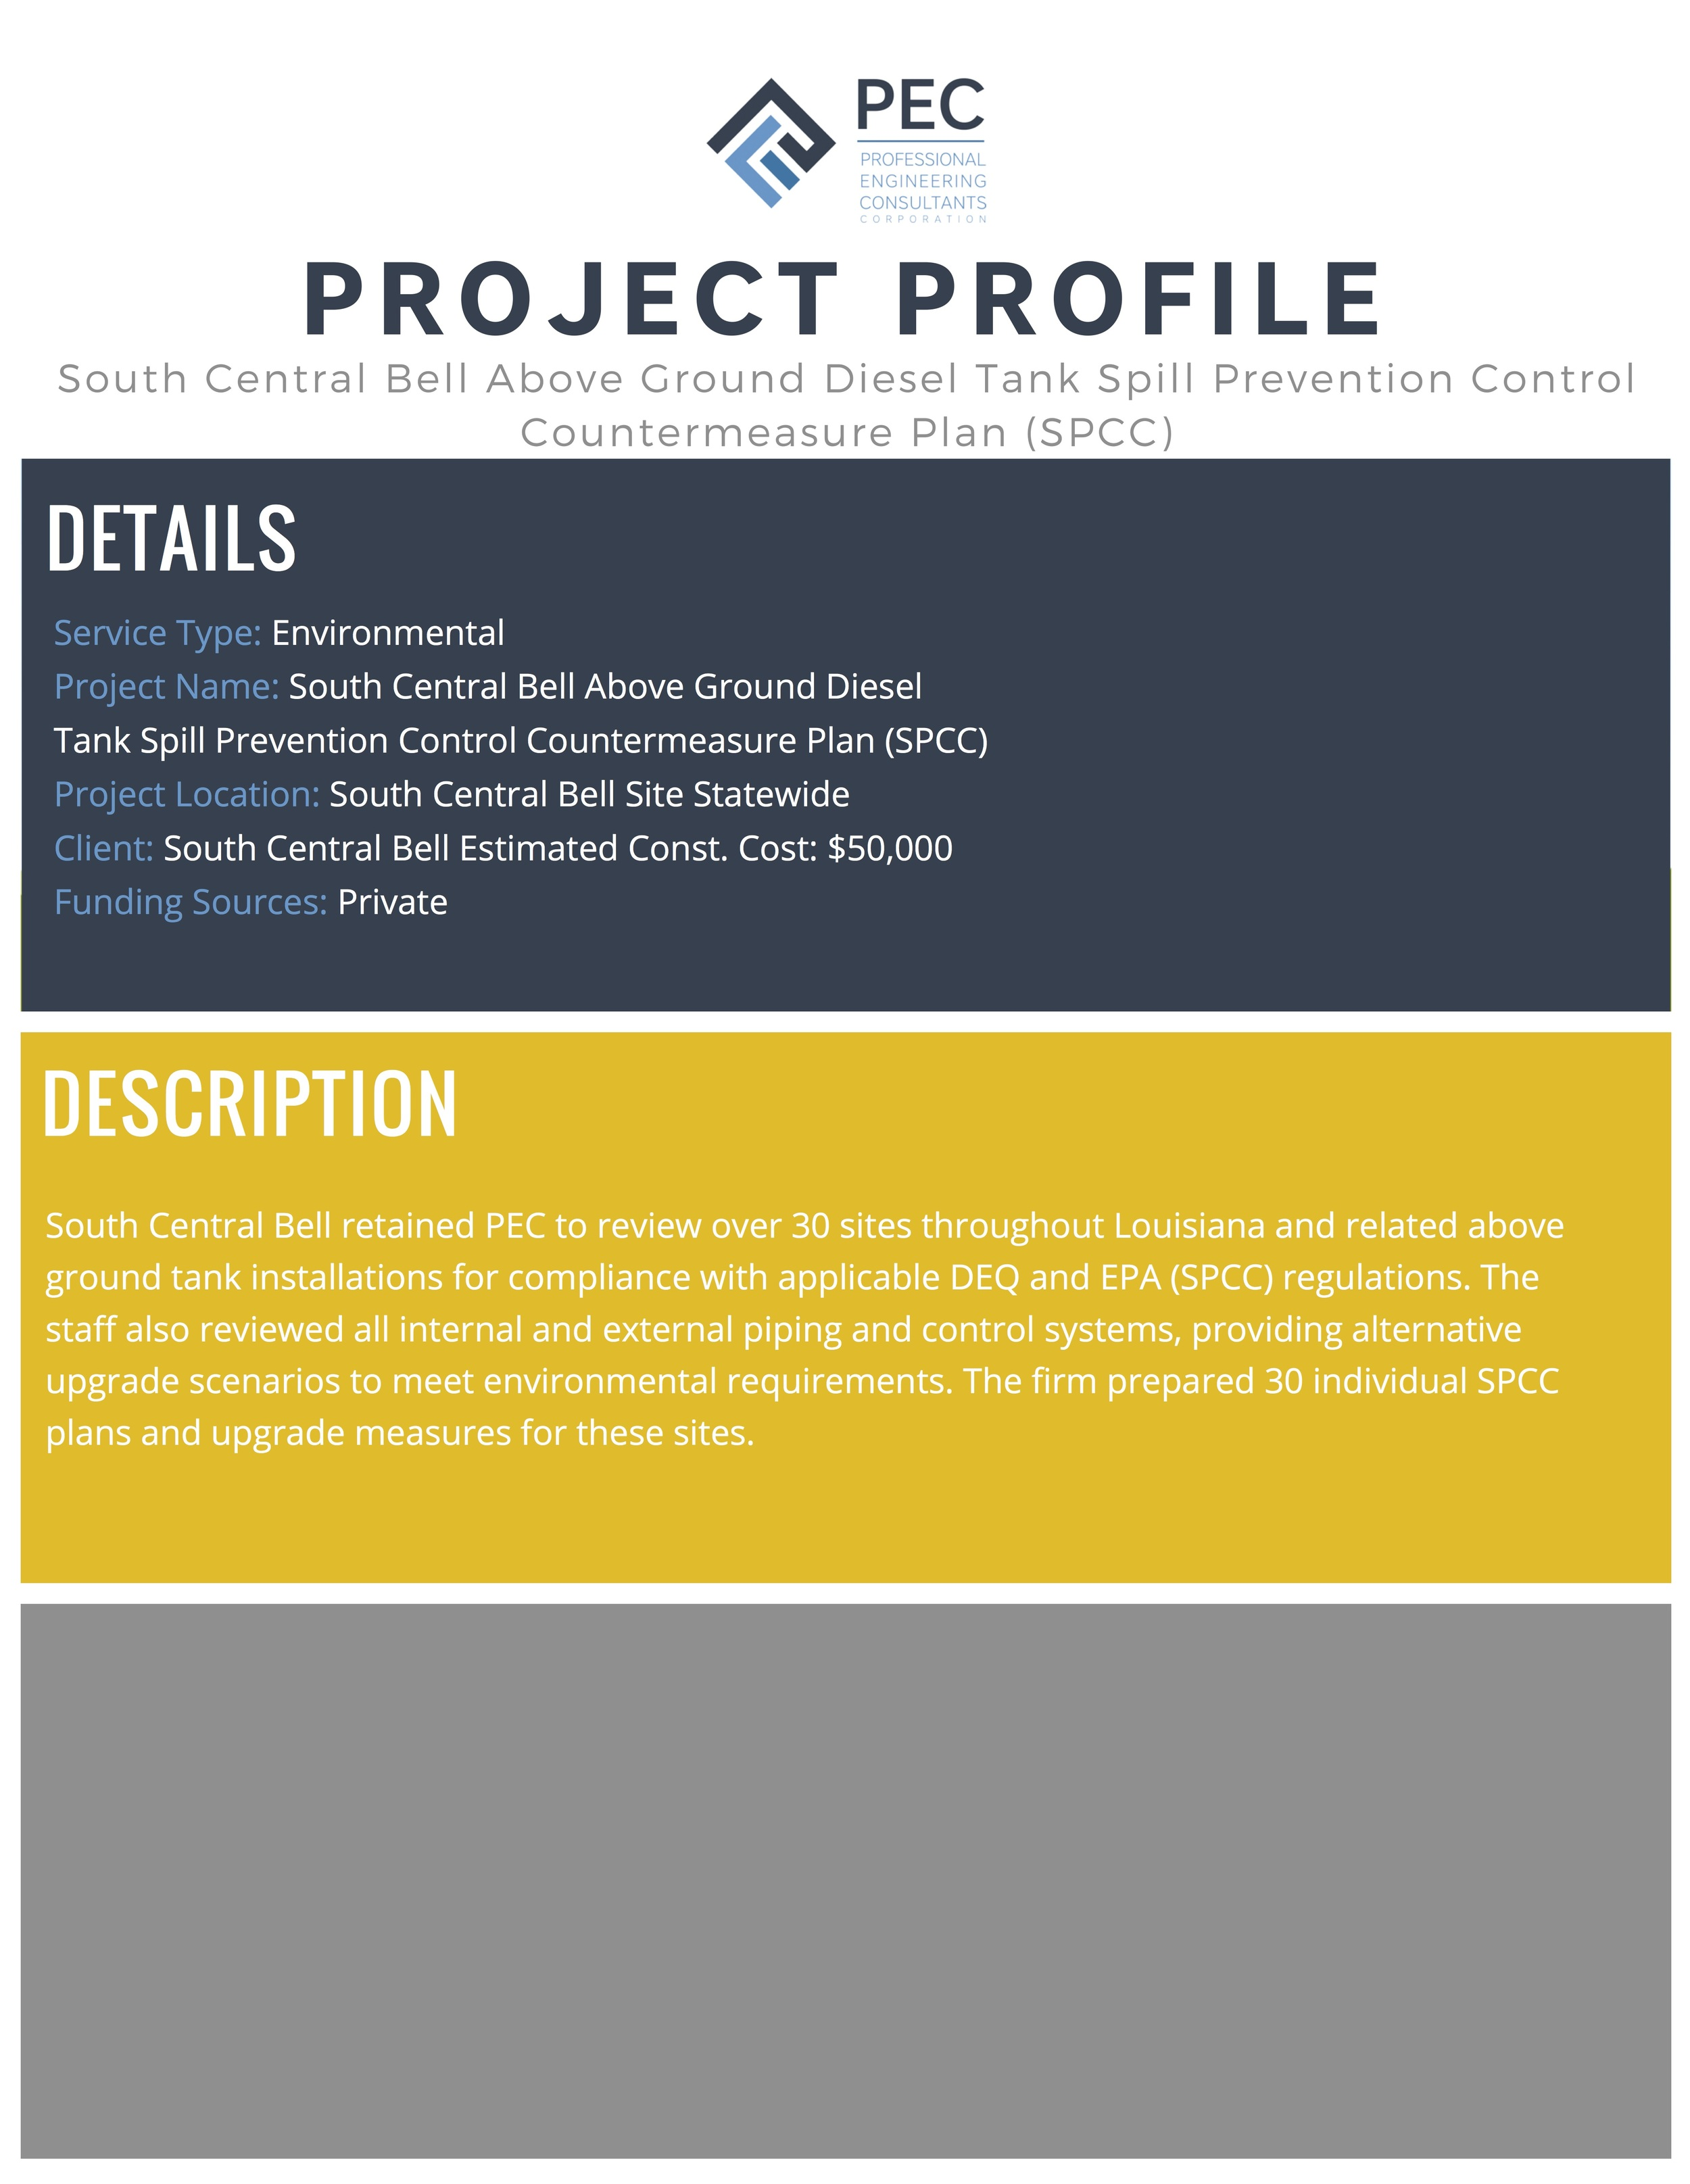 Project Profile_SouthCentralBell.jpg